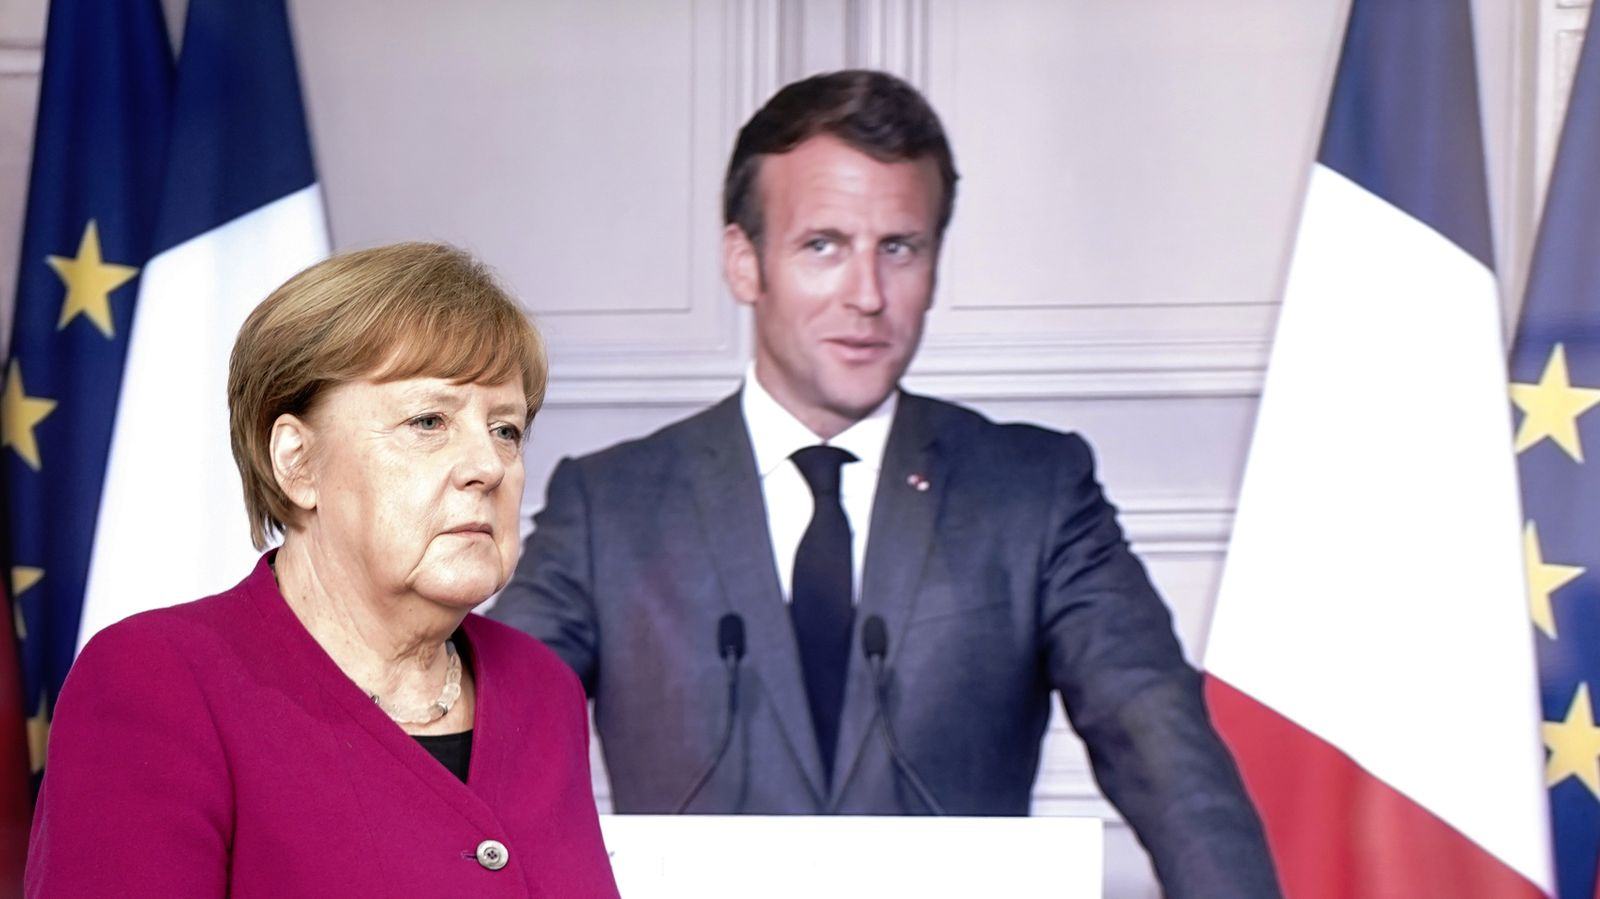 German Chancellor Angela Merkel arrives for a joint video news conference with French President Emmanuel Macron